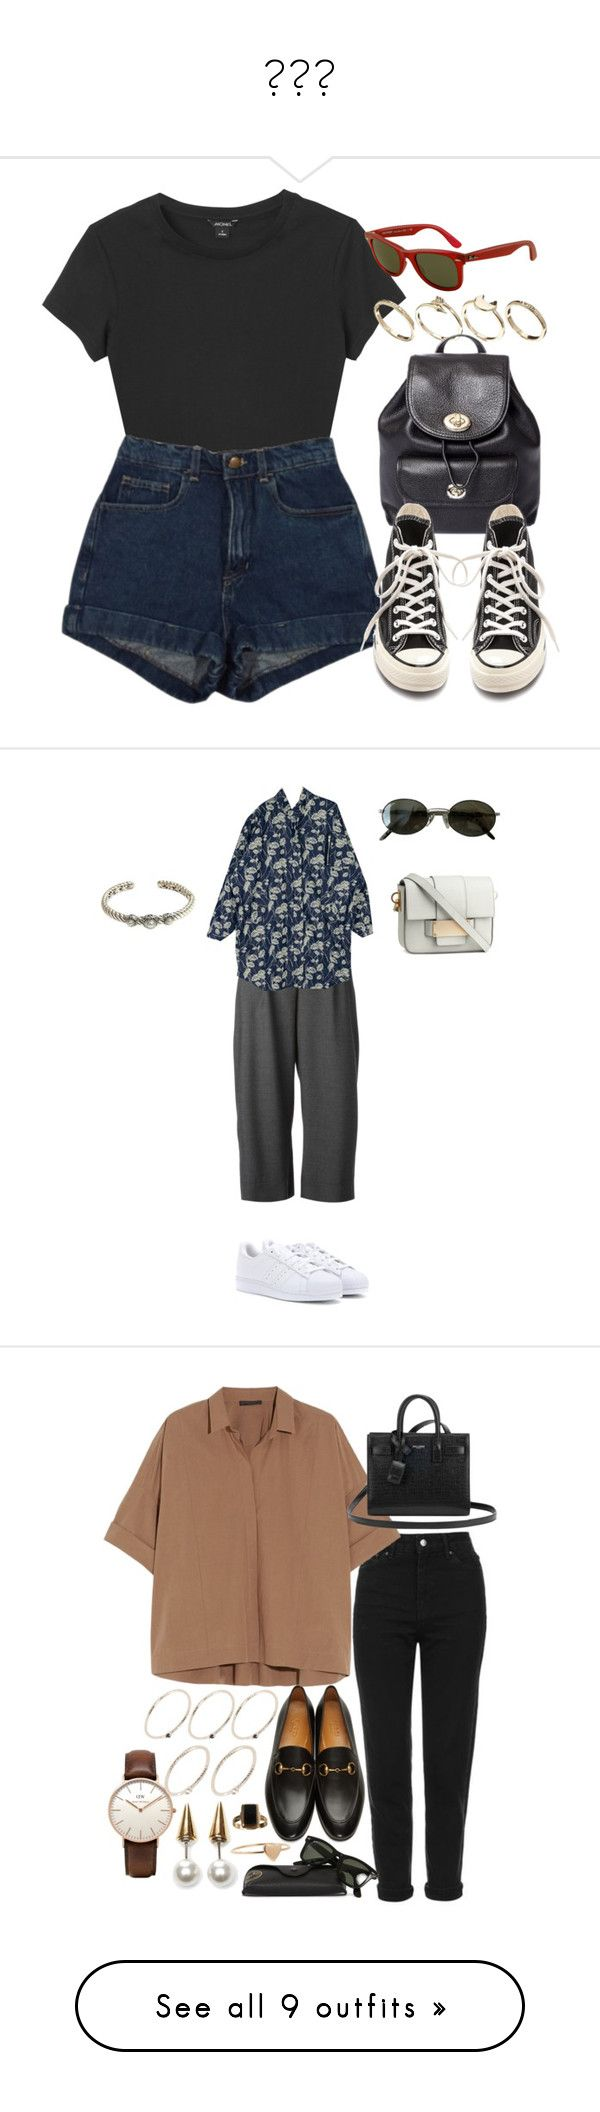 """""""💁🏼🦋"""" by sweetiecloset ❤ liked on Polyvore featuring tops, crop top, bras, underwear, beige crop top, party crop tops, holiday party tops, crop tops, beige top and Monki"""